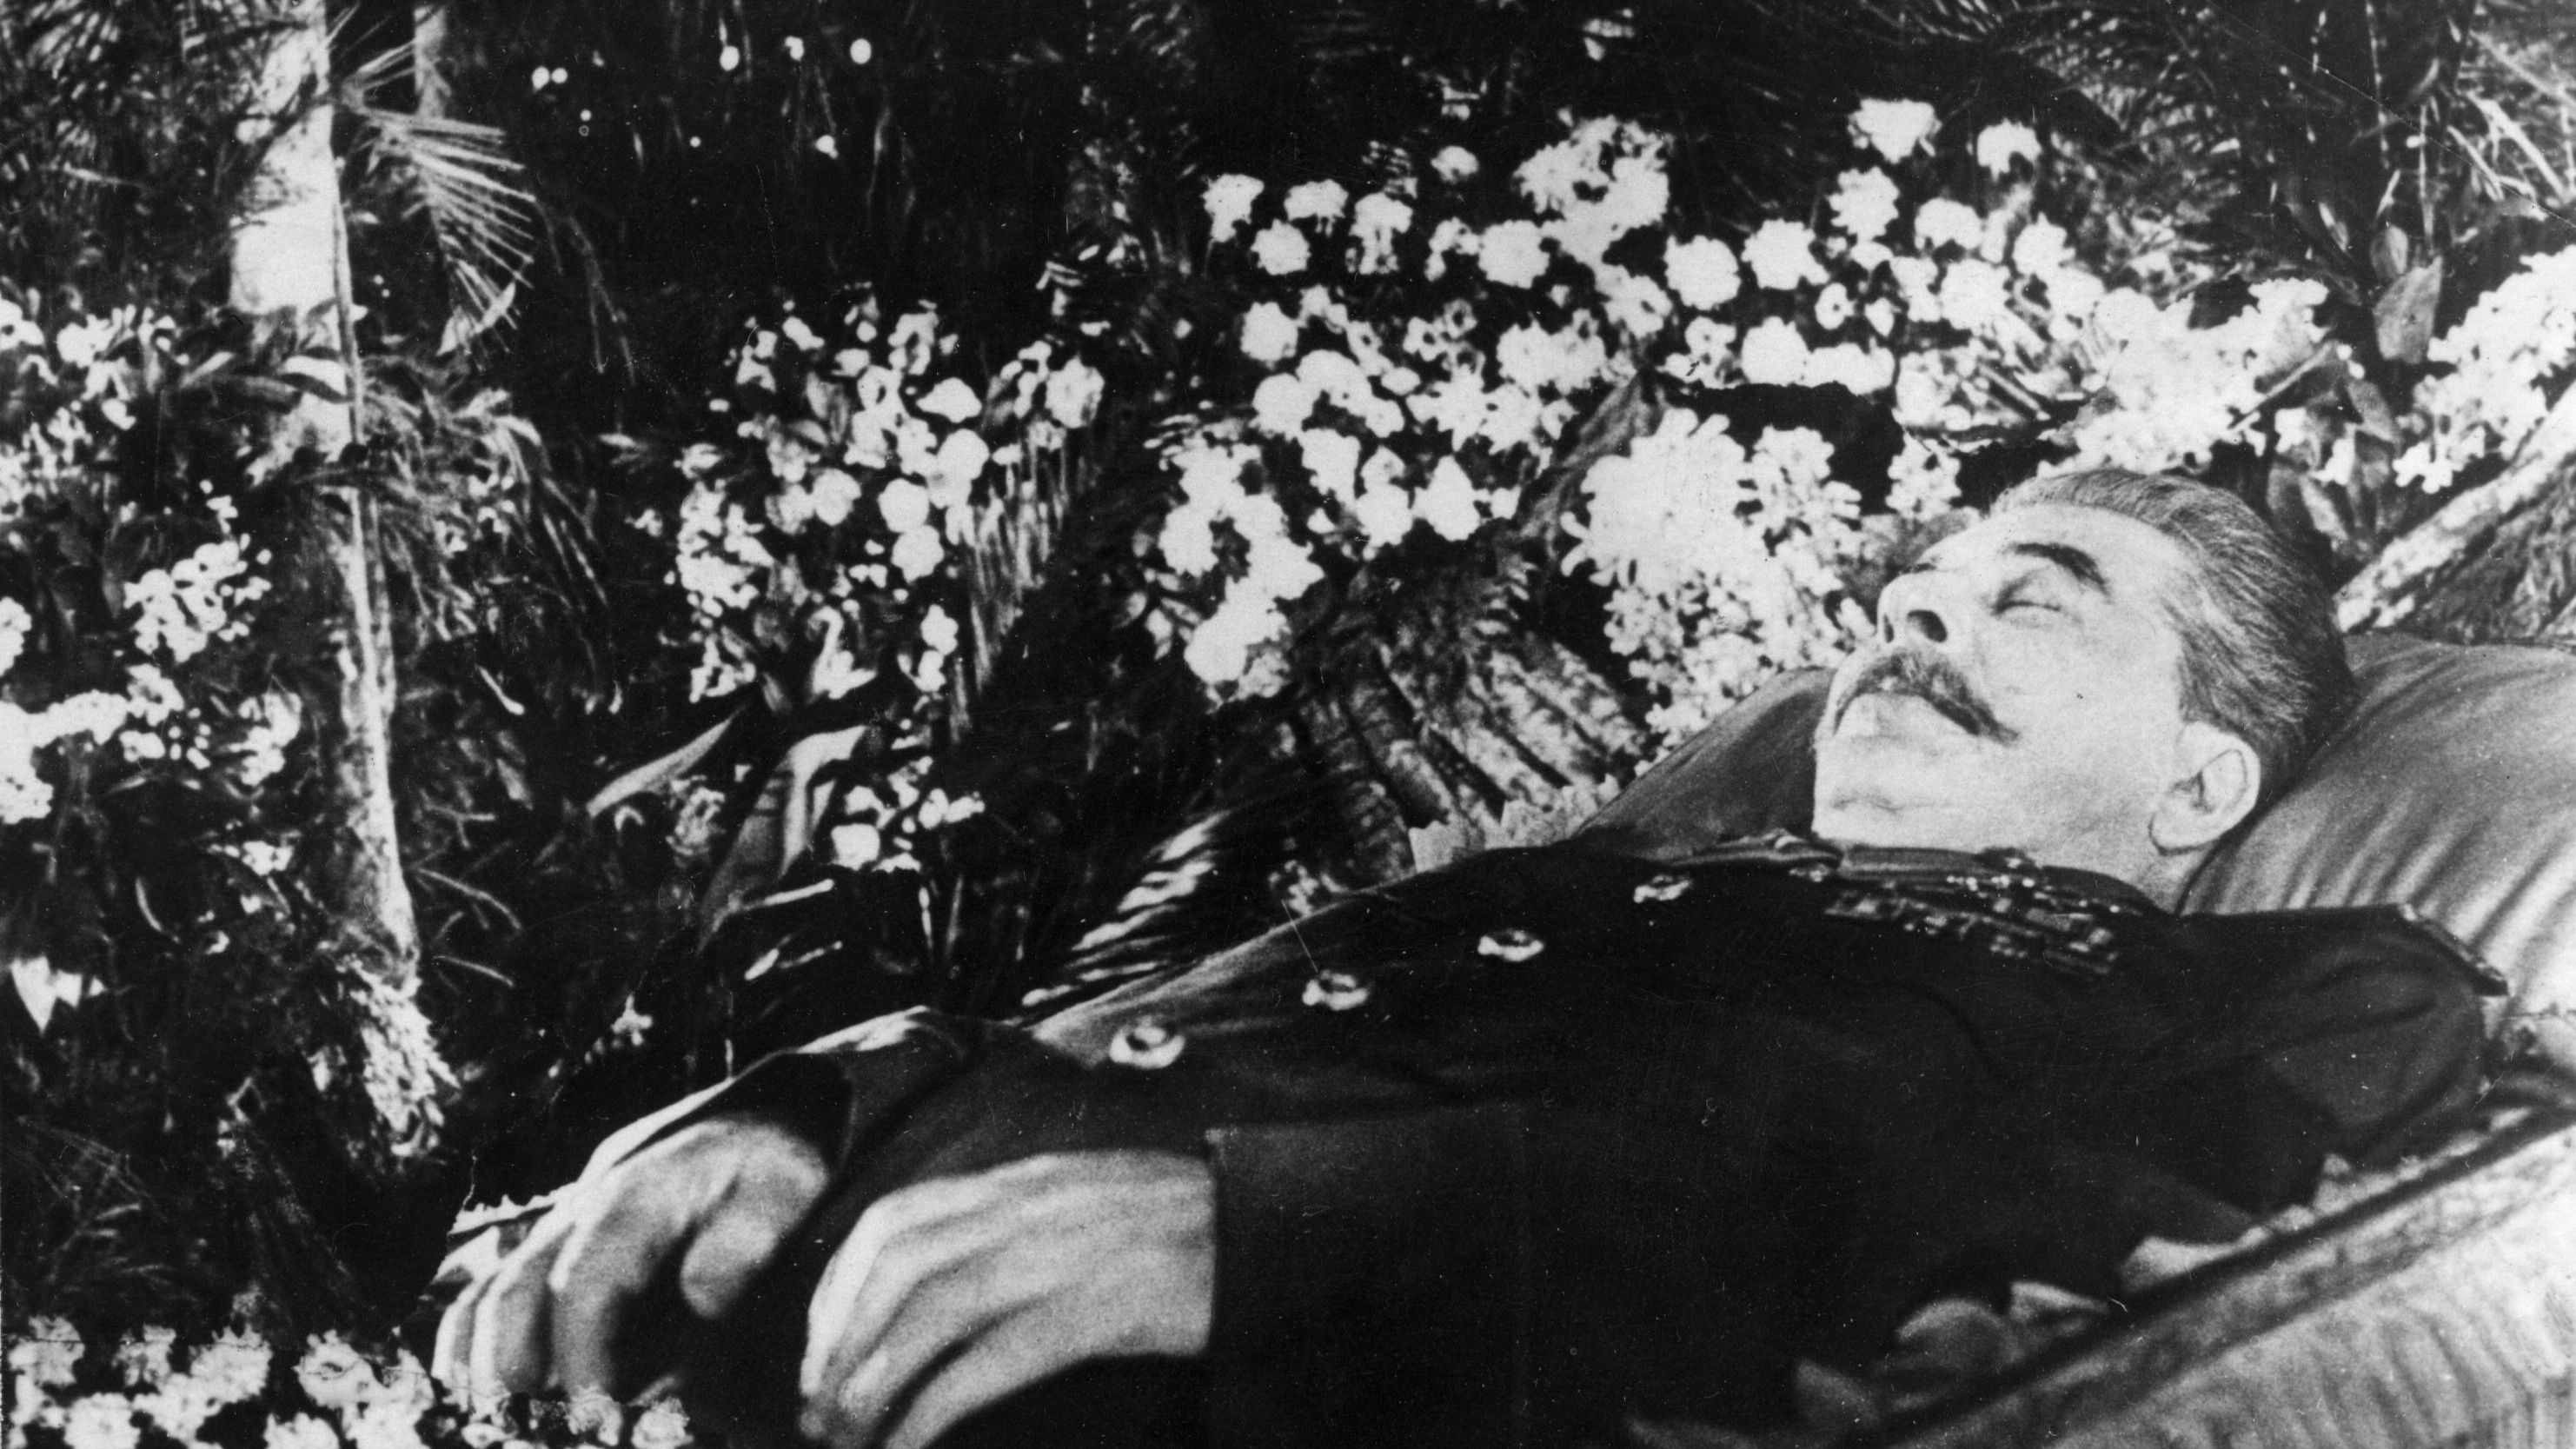 Body of Stalin Removed From Lenin's Tomb